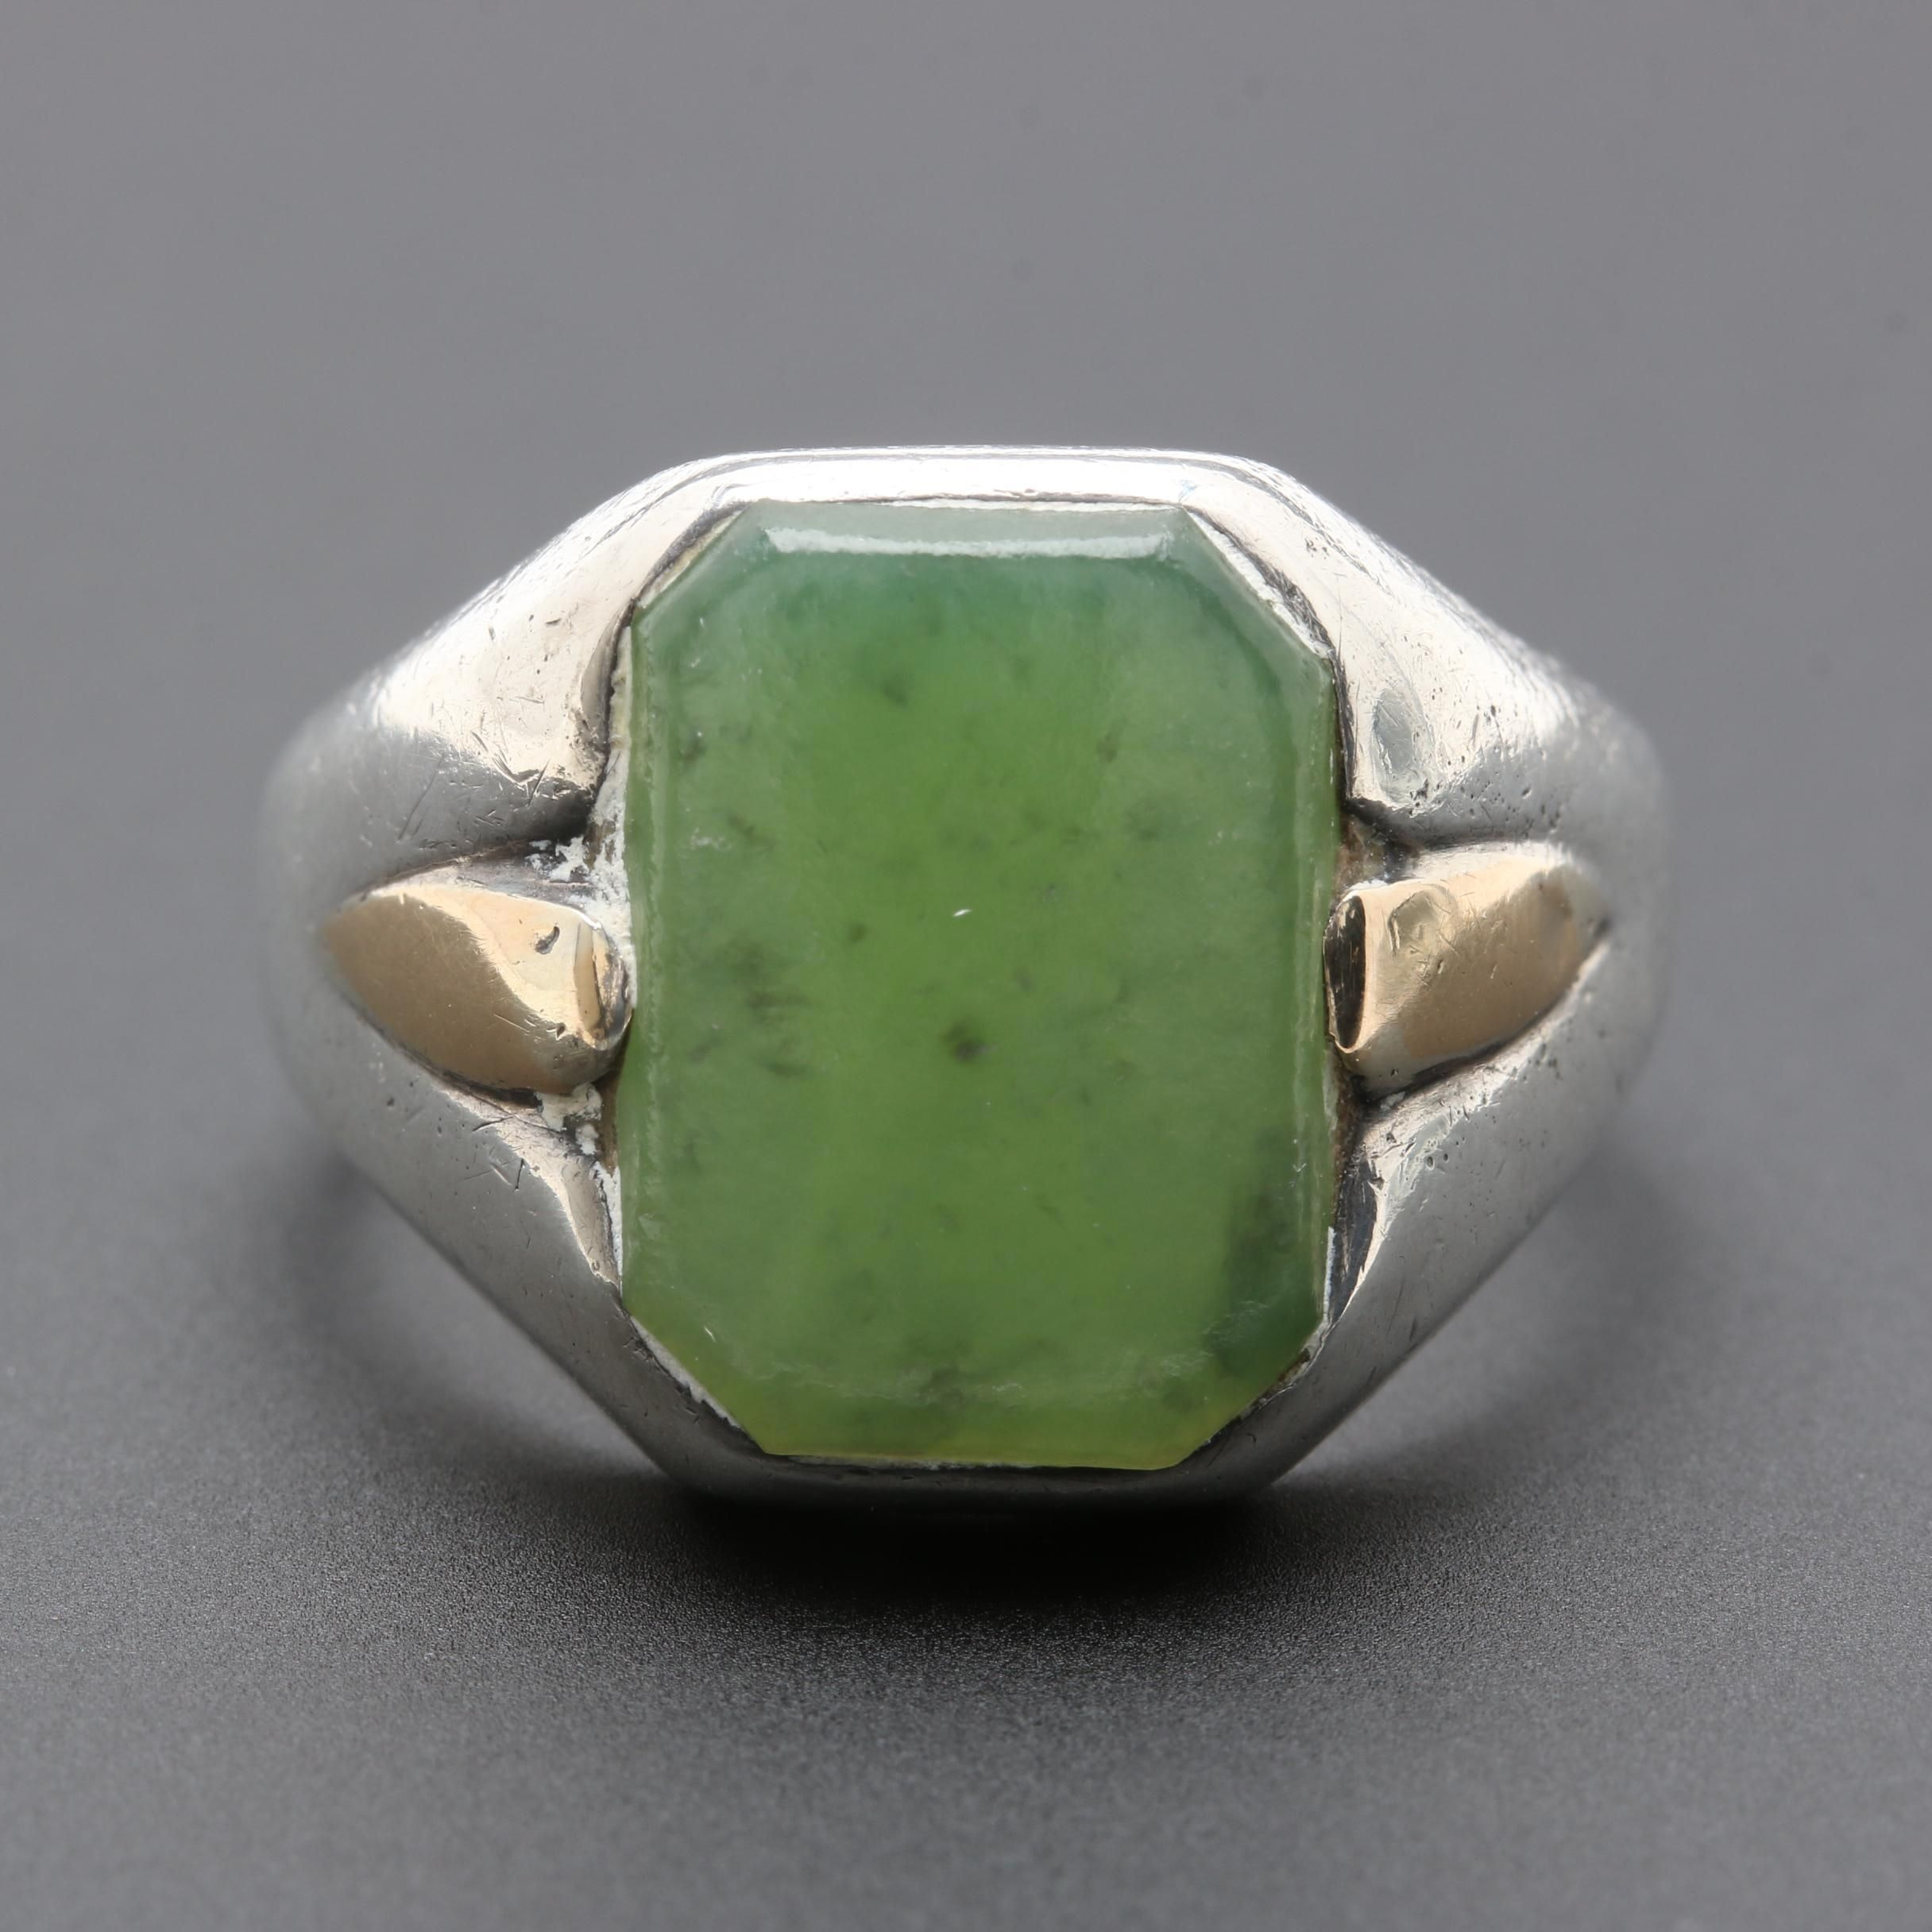 Vintage Sterling Silver Nephrite Ring with Gold Wash Accents